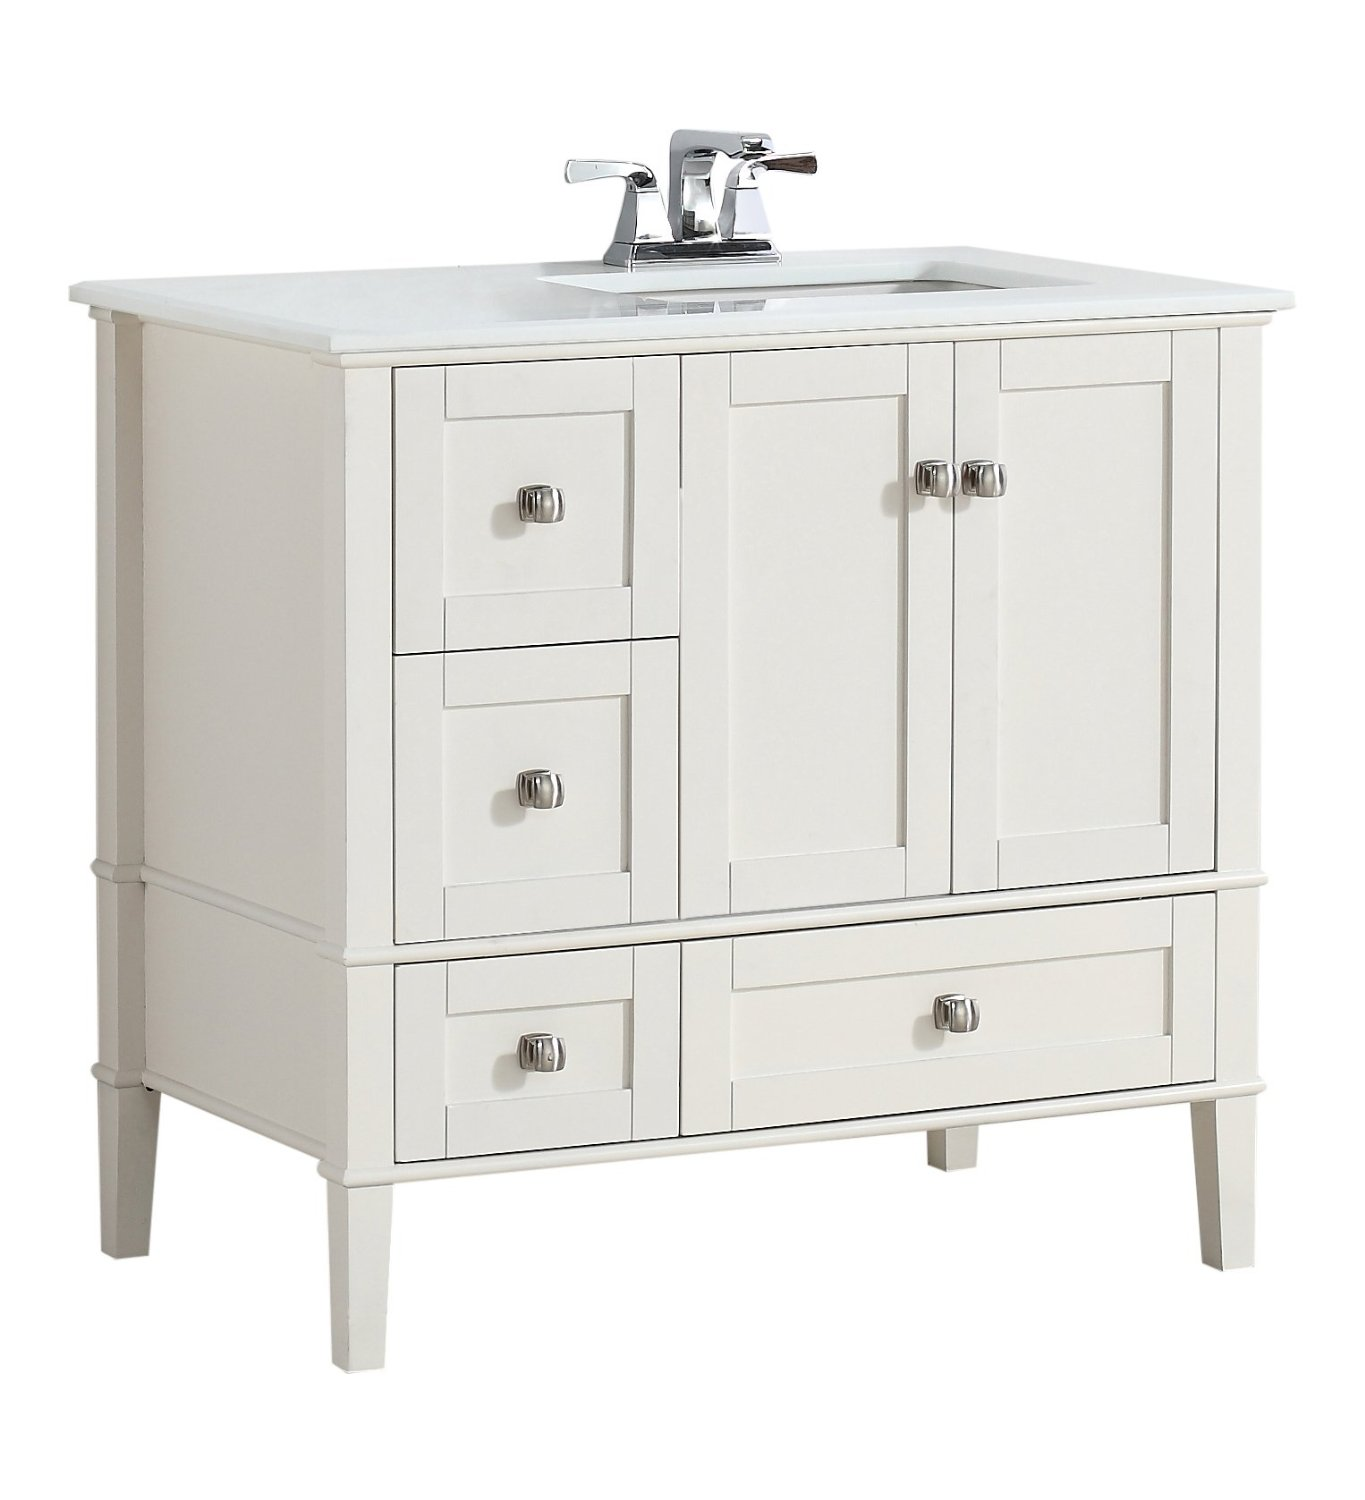 Perfect White Bathroom Vanity and Storage Cabinet Ideas HGNV